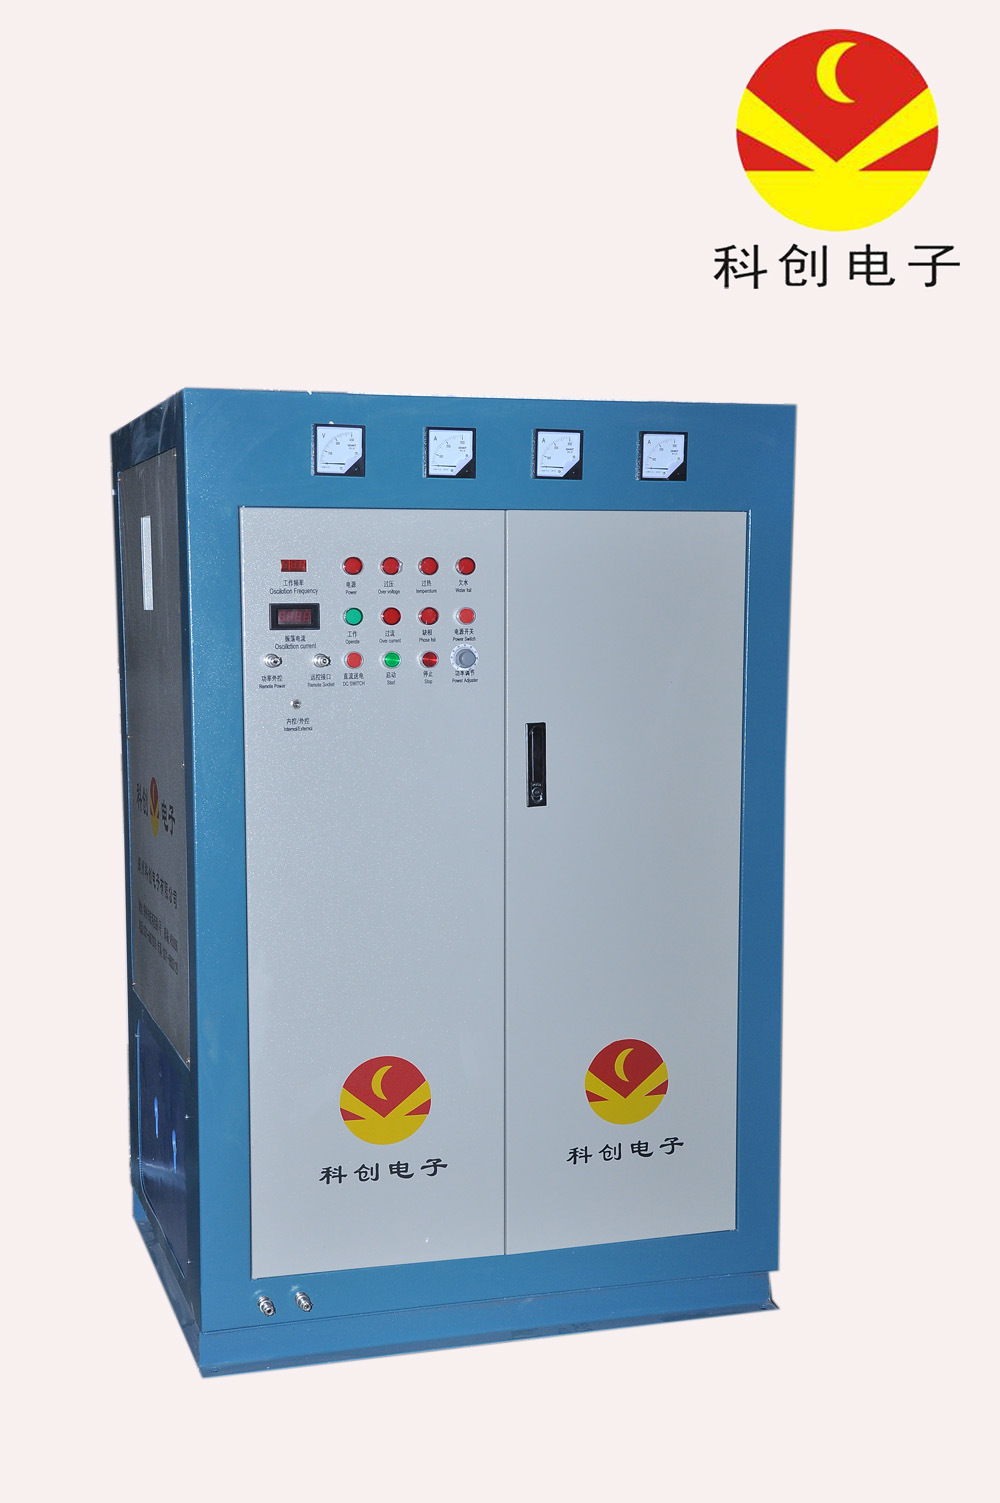 China Igbt Induction Heater With Infrared Thermometer For Hammer Heating Iii Heat Treatment Machine